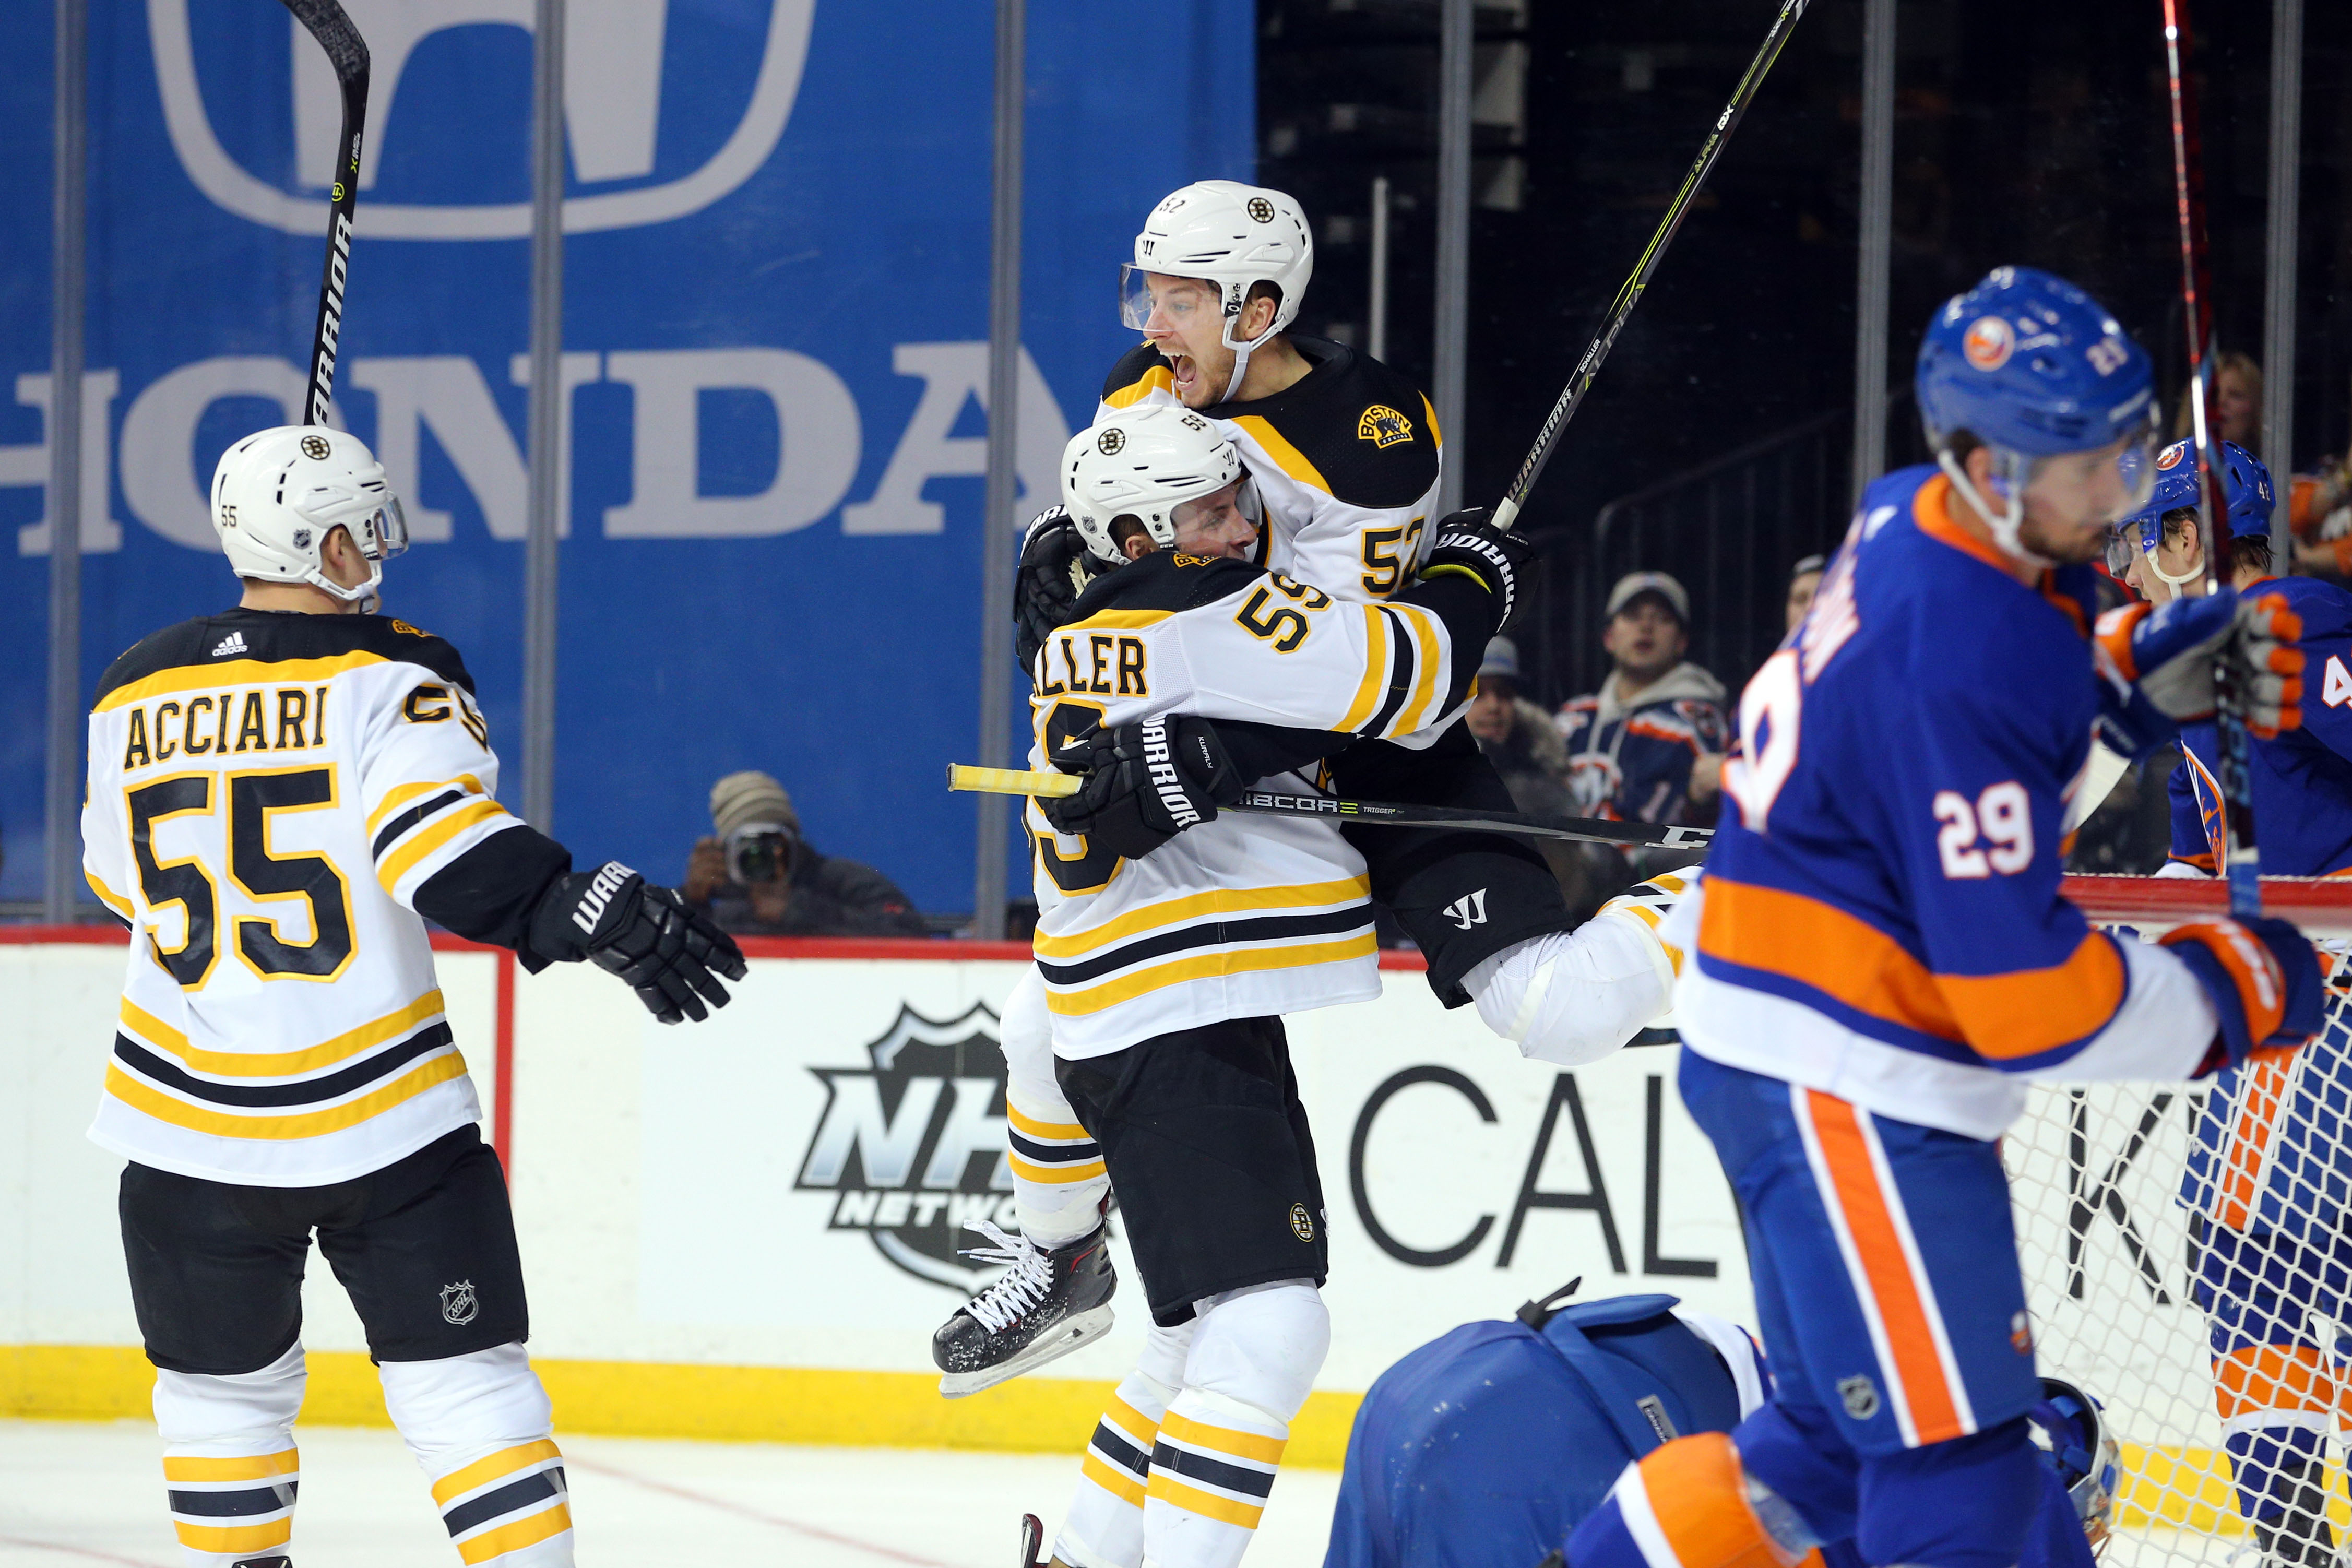 Jan 2, 2018; Brooklyn, NY, USA; Boston Bruins left wing Tim Schaller (59) celebrates his goal against the New York Islanders with Boston Bruins center Sean Kuraly (52) during the third period at Barclays Center. Mandatory Credit: Brad Penner-USA TODAY Sports